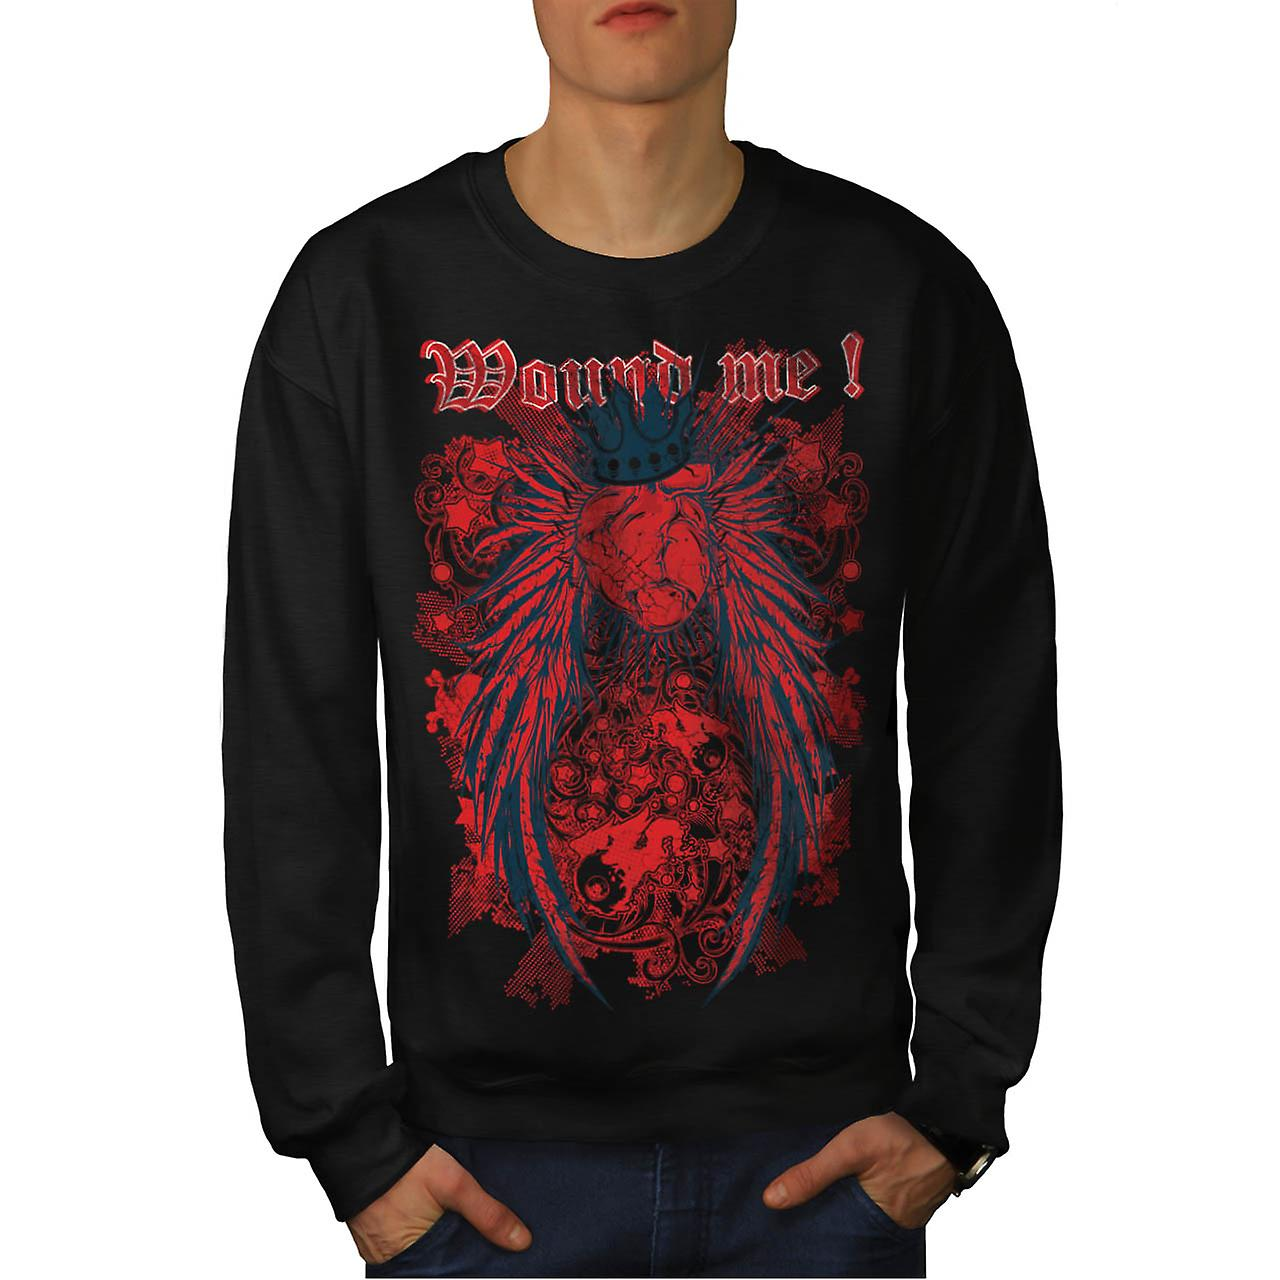 Wounded Heart Art Fashion Men Black Sweatshirt | Wellcoda